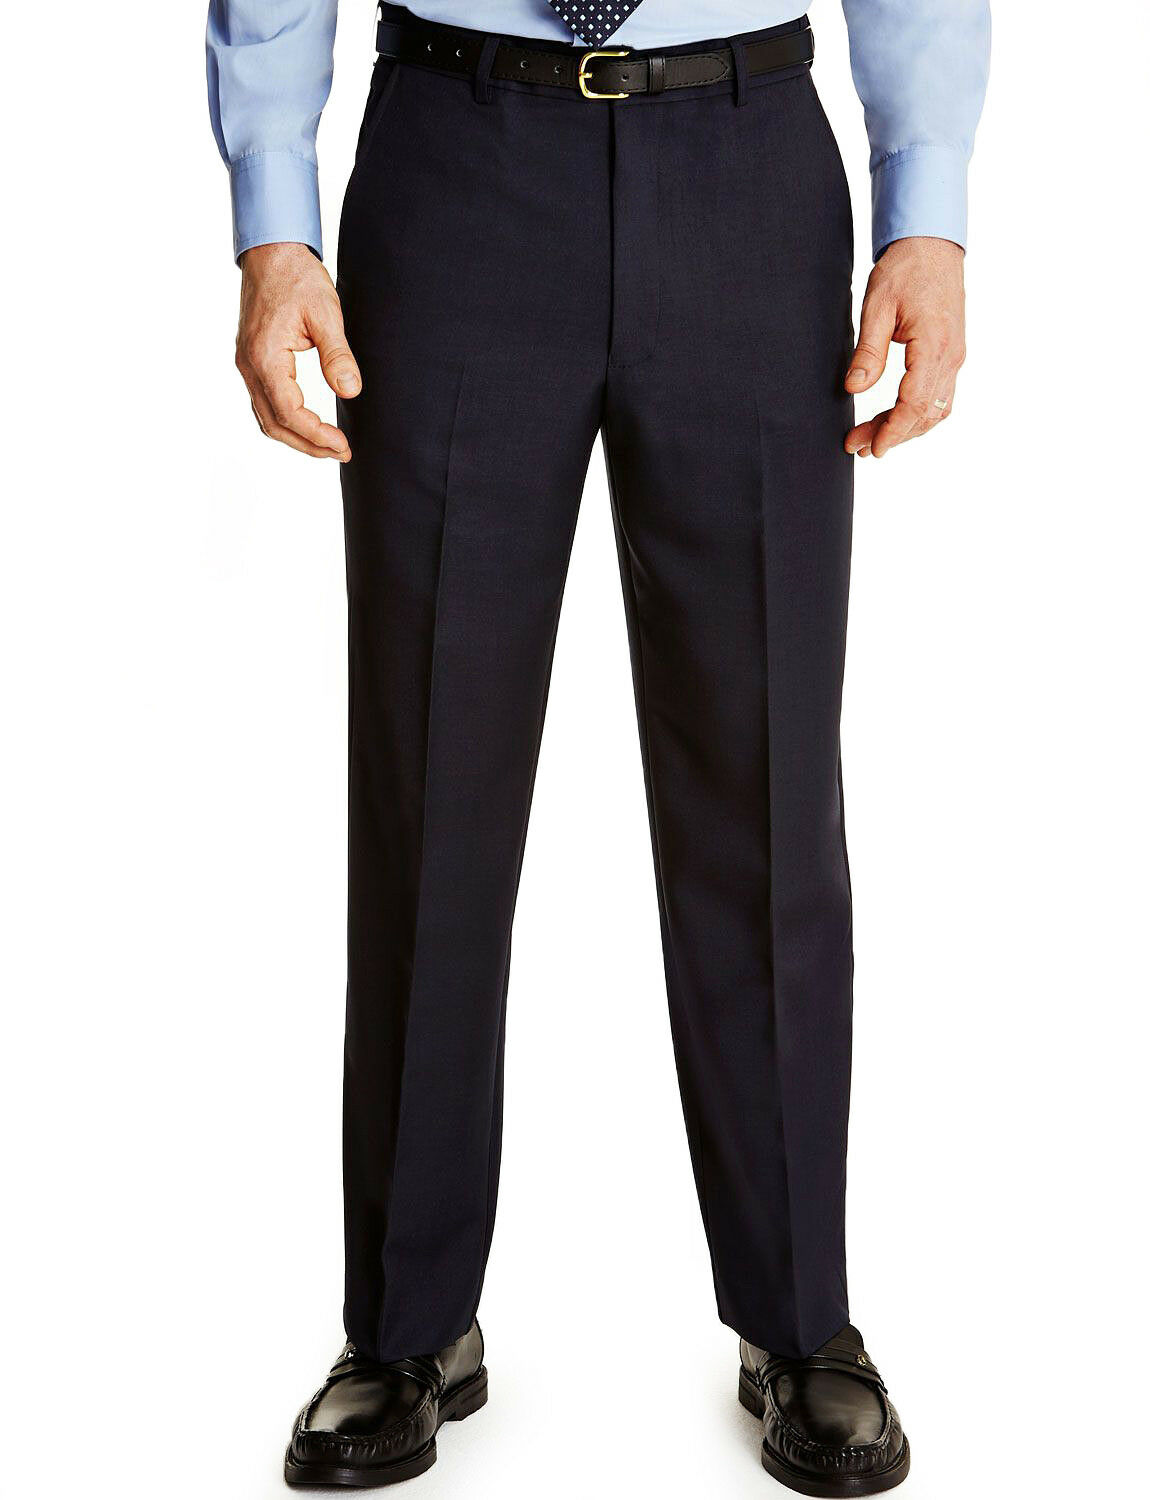 Farah® Flex Waist Trousers Navy - 36 33